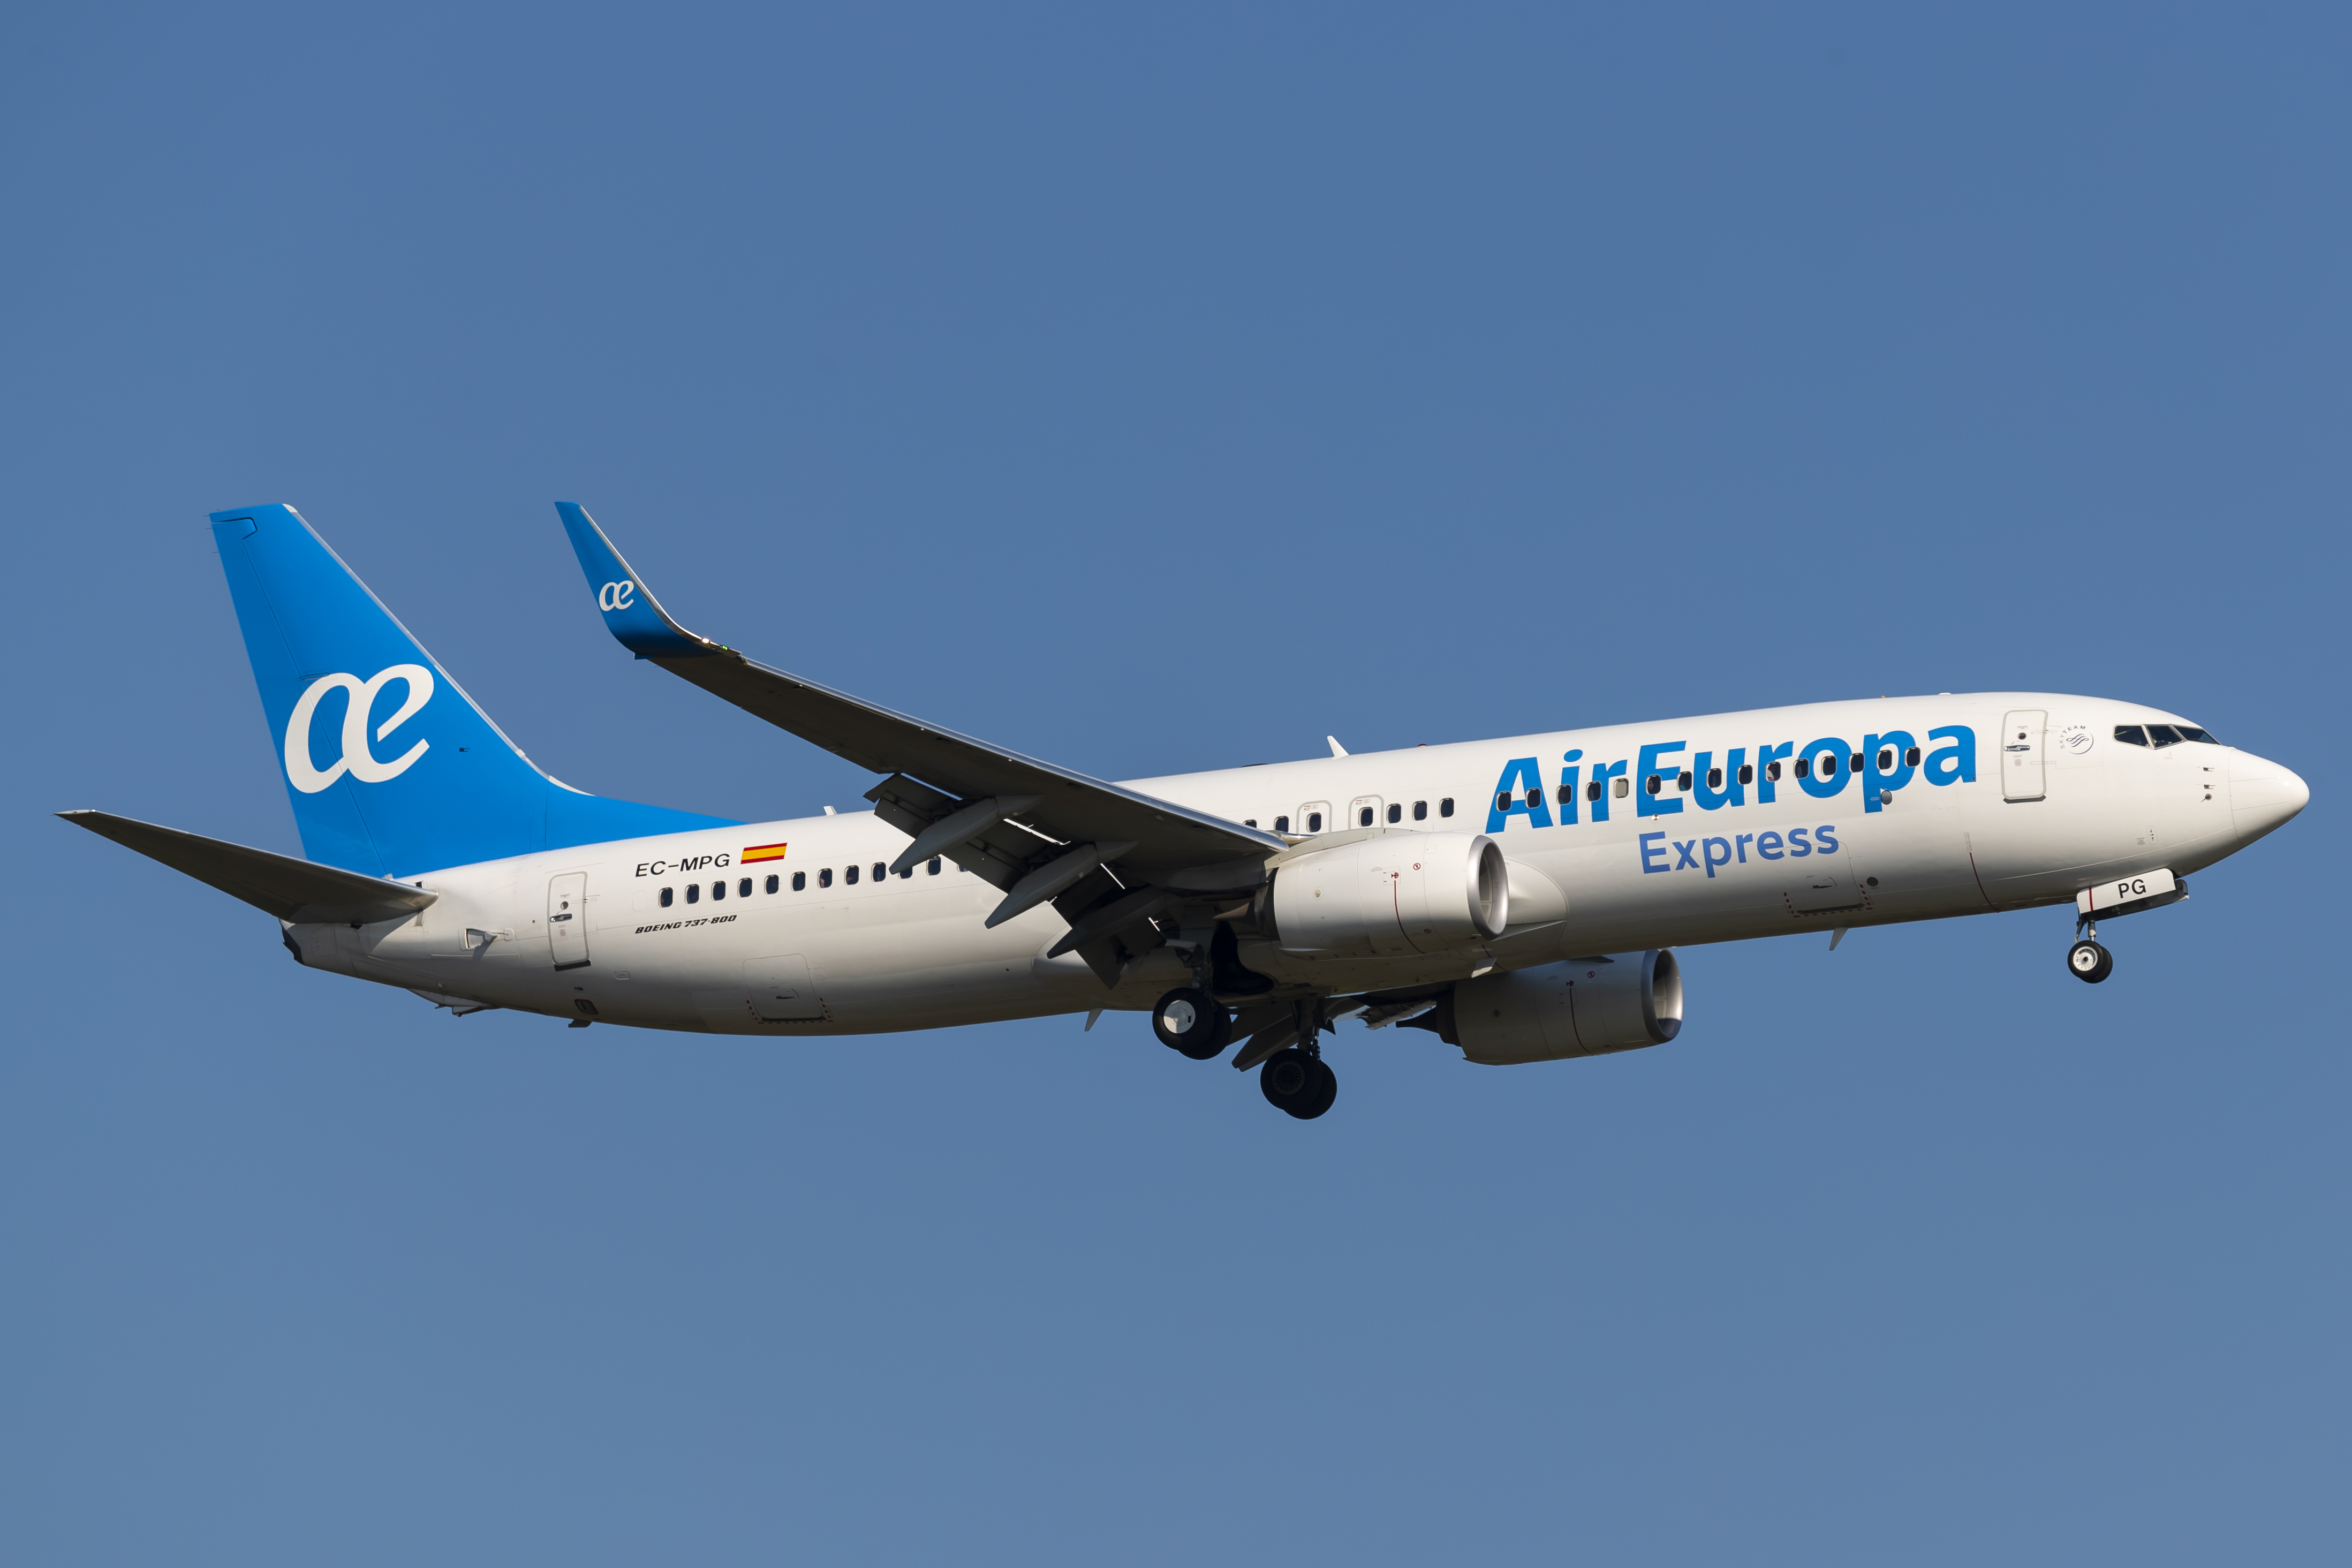 En Boeing 737-800 fra det spanske flyselskab Air Europa. Foto: © Thorbjørn Brunander Sund, Danish Aviation Photo